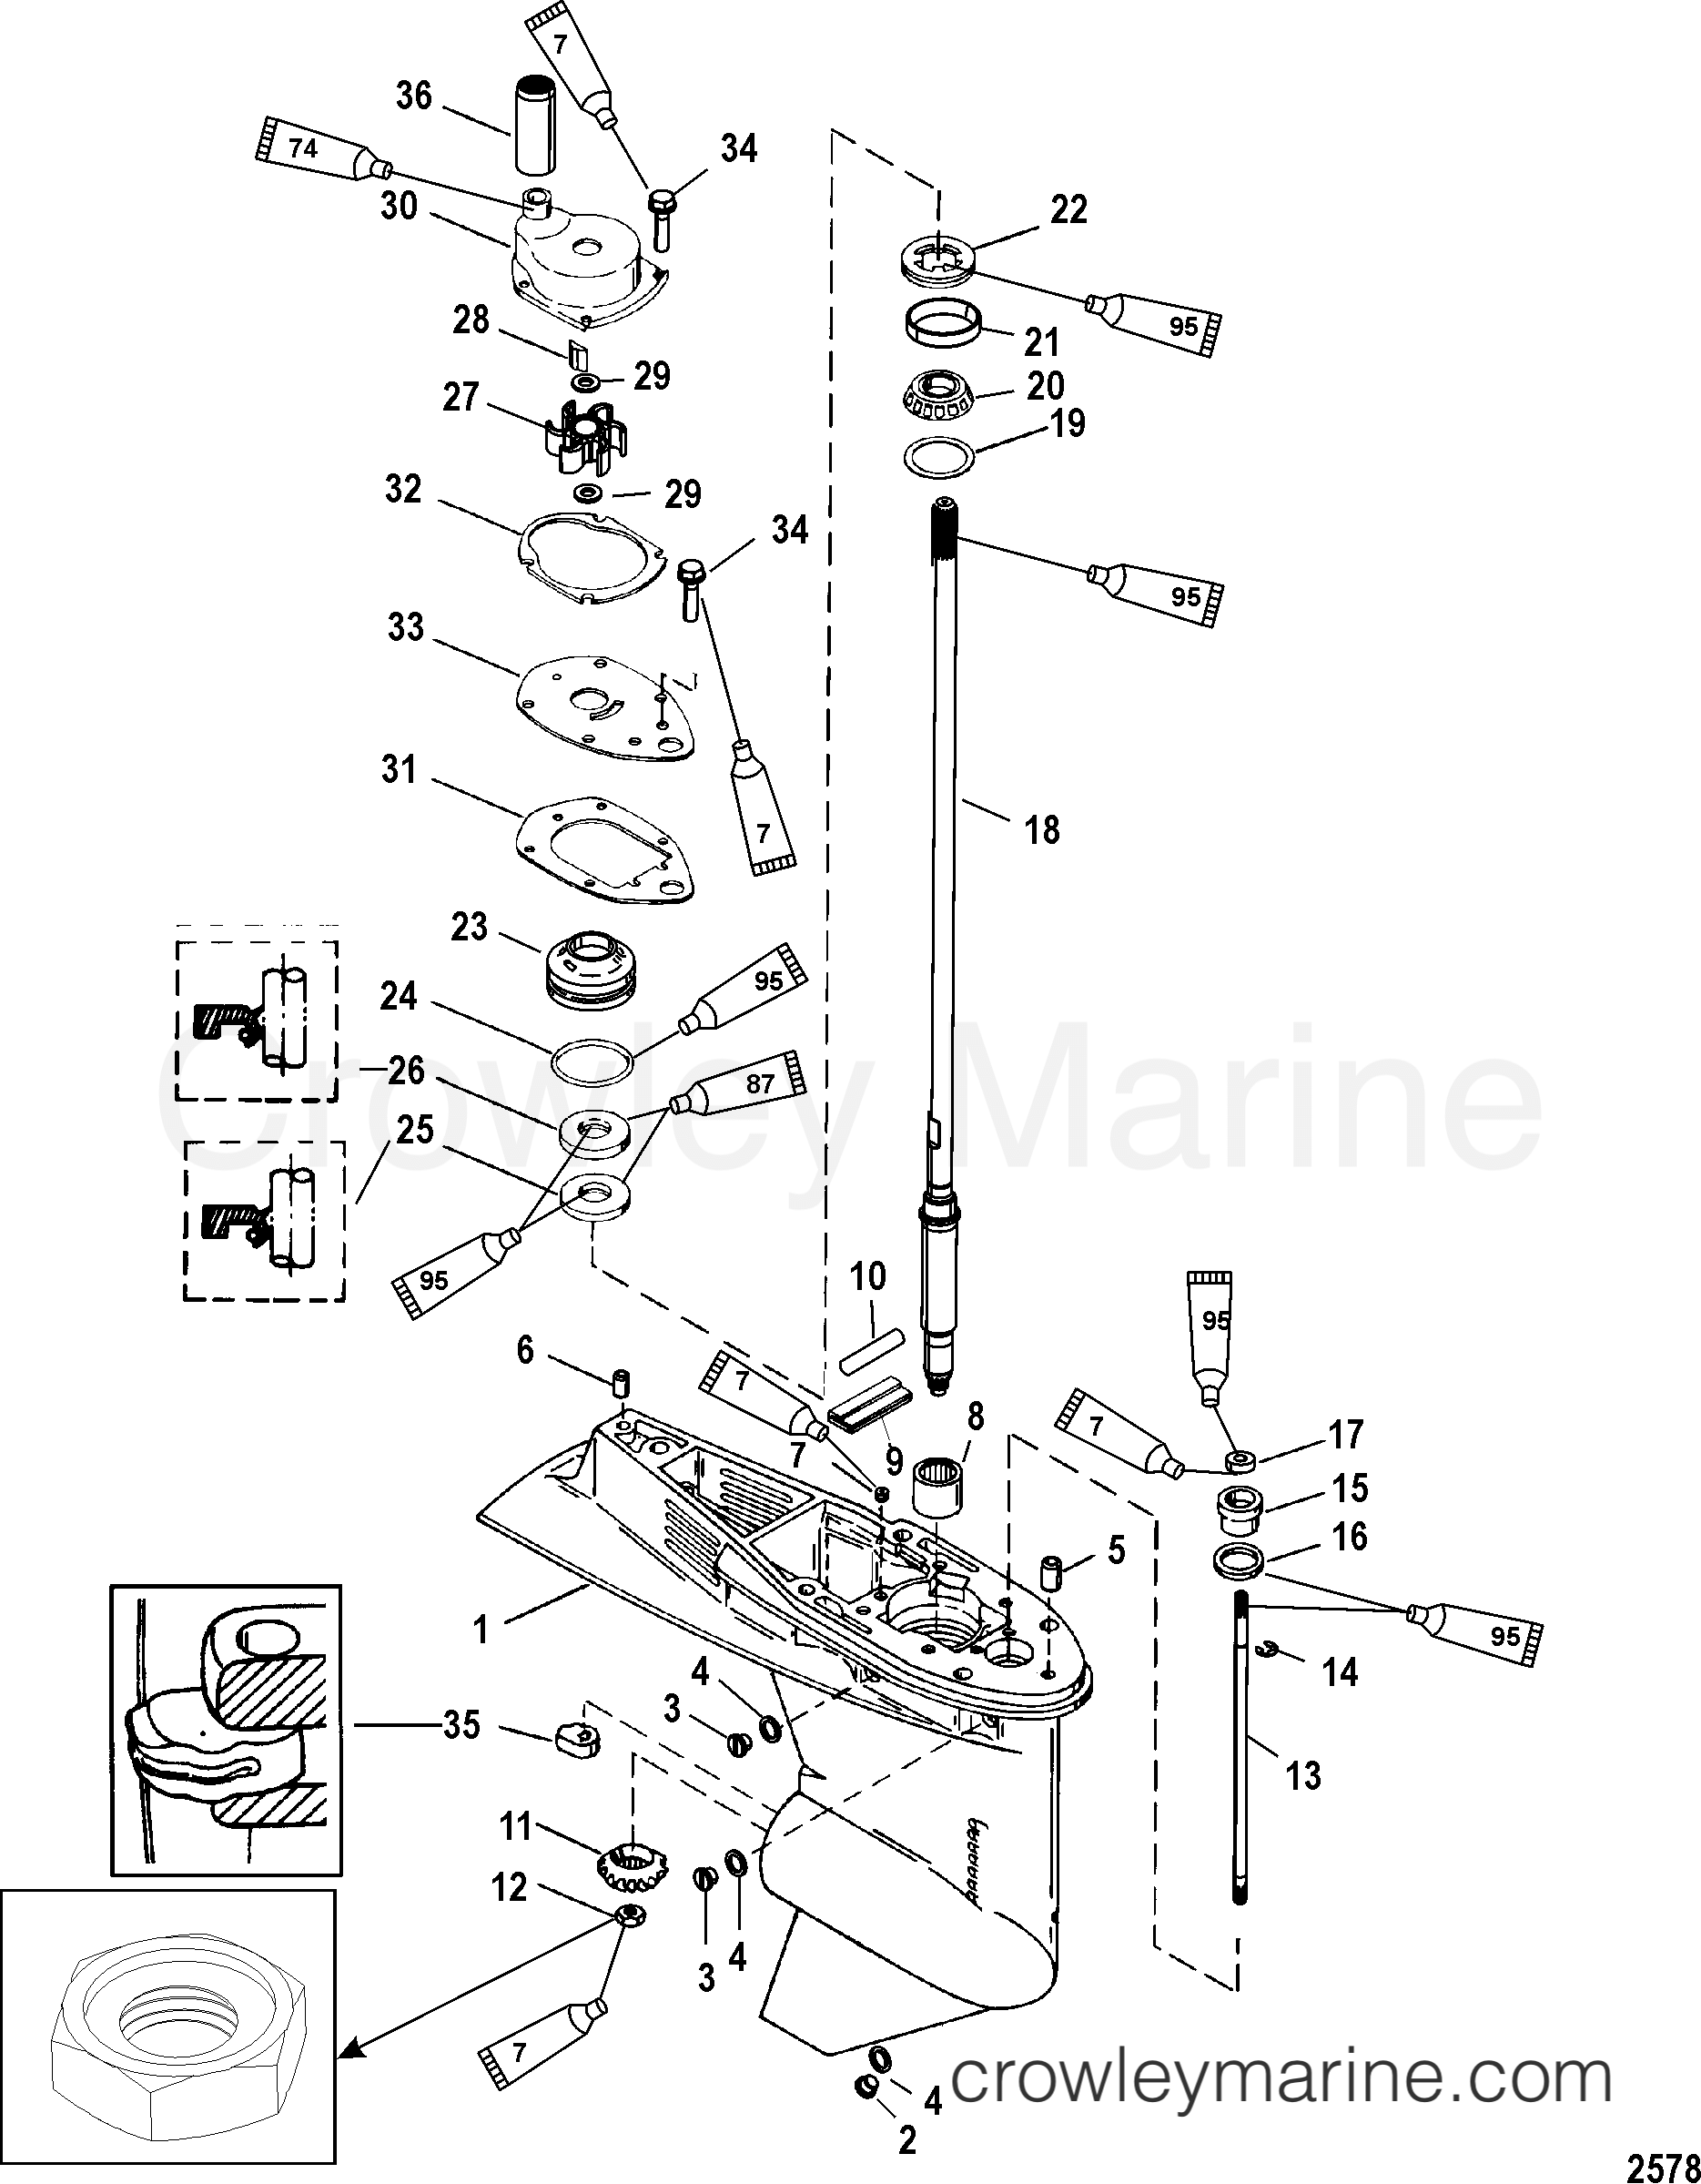 Serial Range Mariner Outboard 40 EFI (4 CYL.)(4-STROKE) - 0P401000 THRU 0P515896 [BEL] GEAR HOUSING(DRIVESHAFT)(1.83:1 GEAR RATIO) section